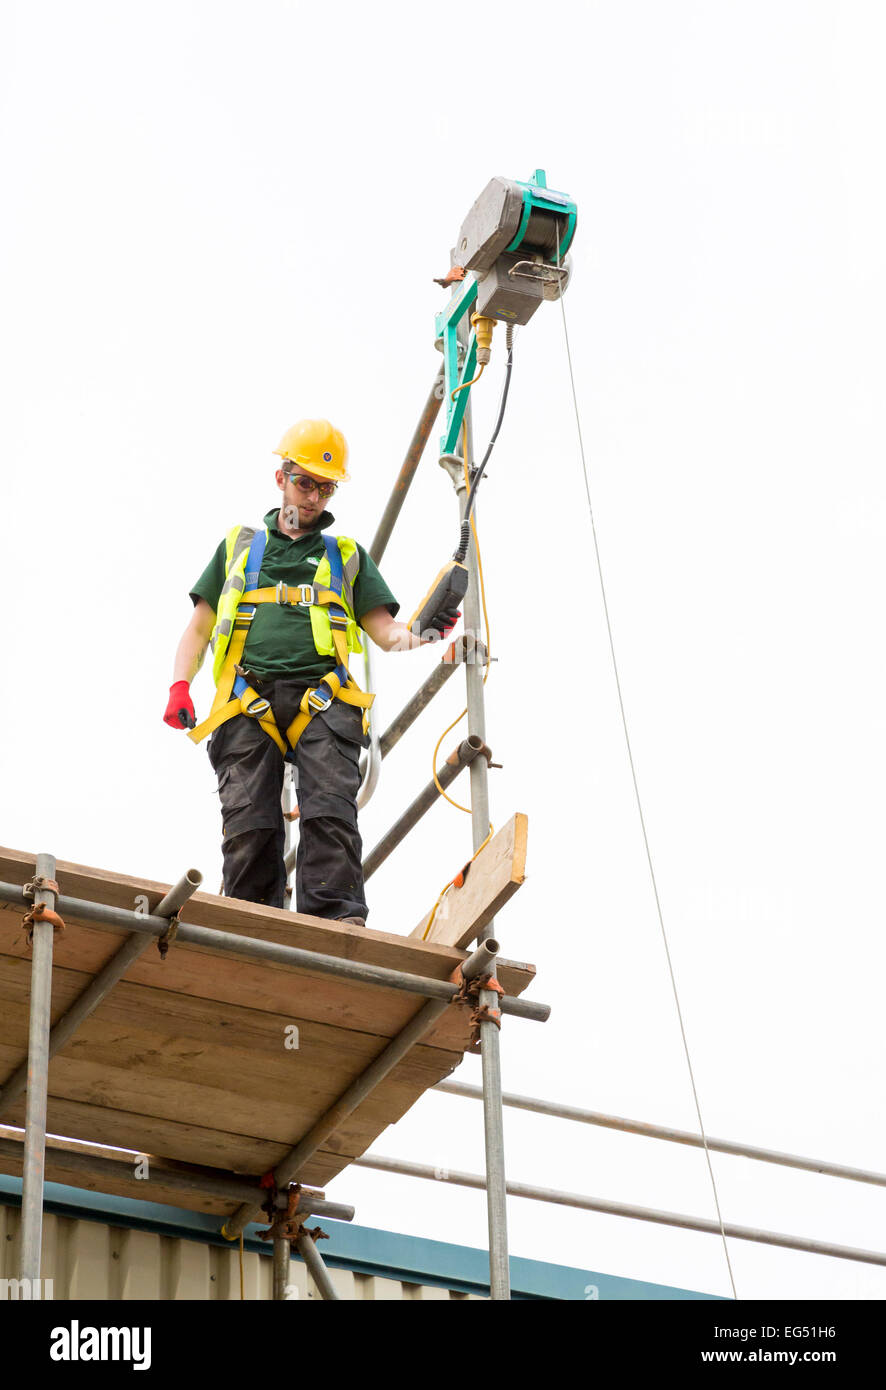 man using hoist and fall restraint harness for safety Stock